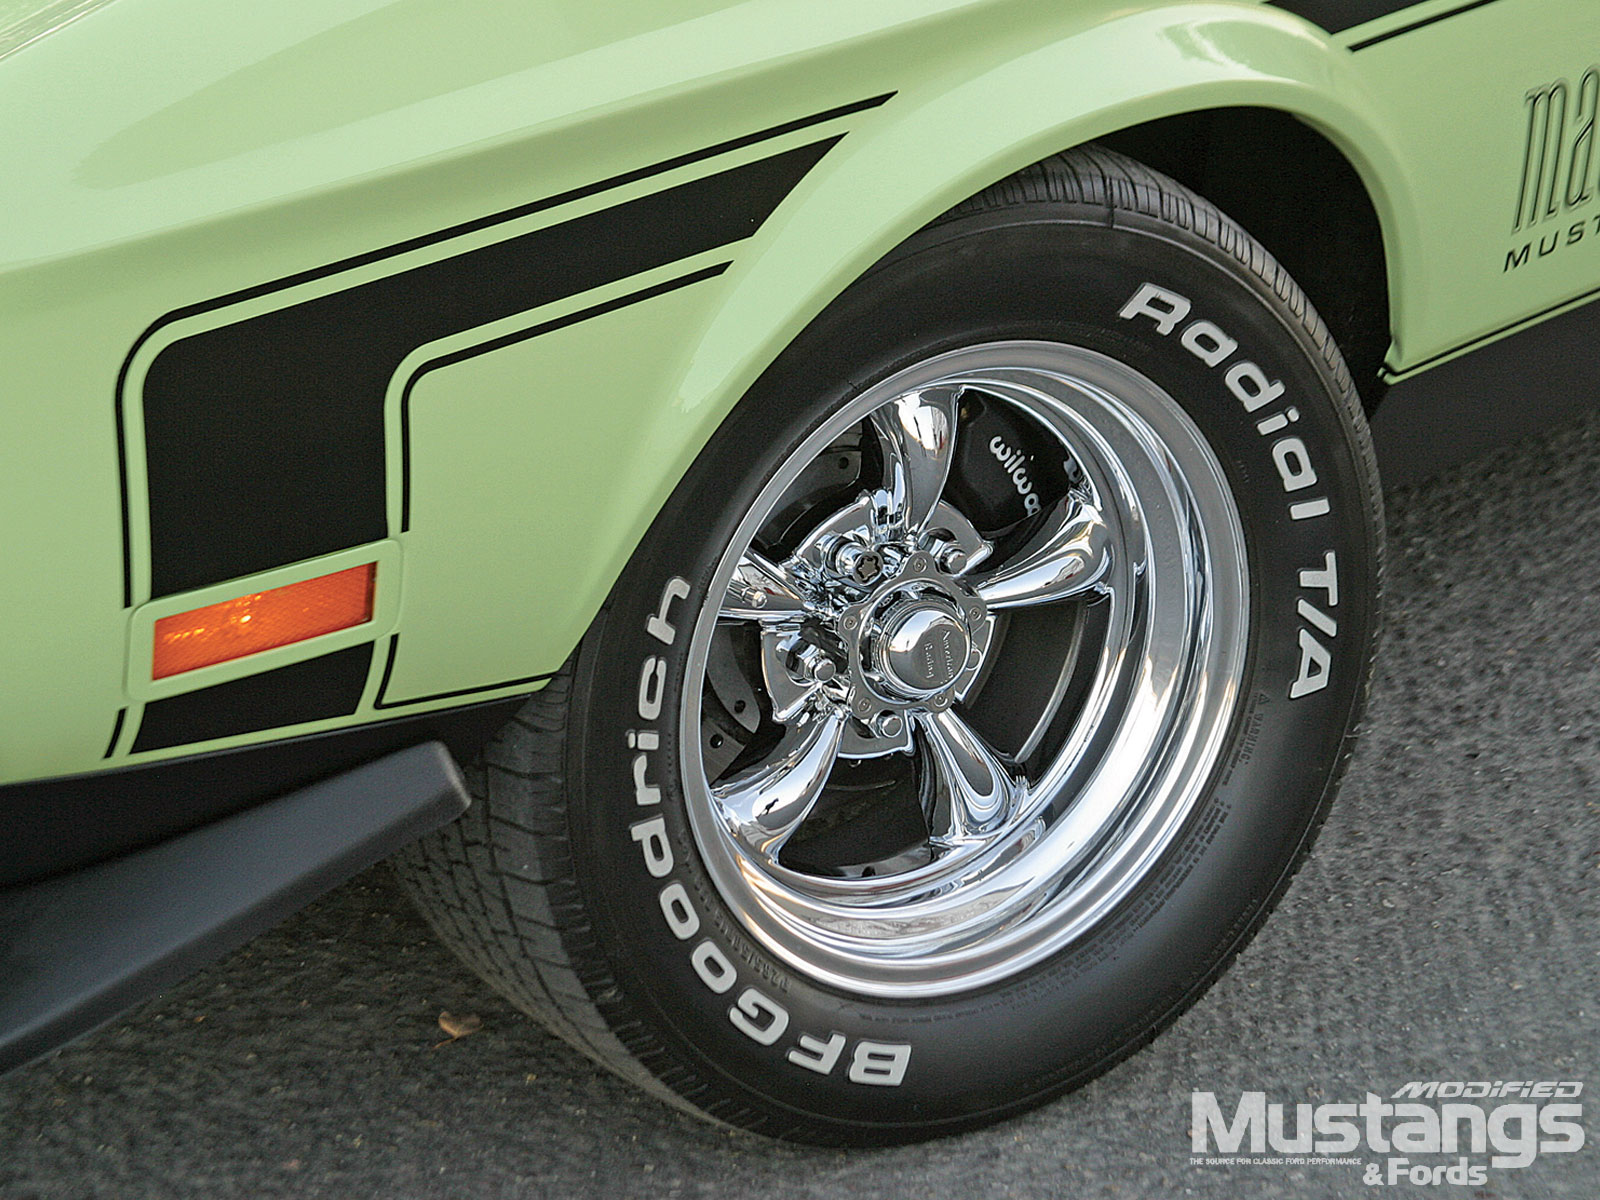 1971 Ford Mustang Mach 1 Tires And Wheels